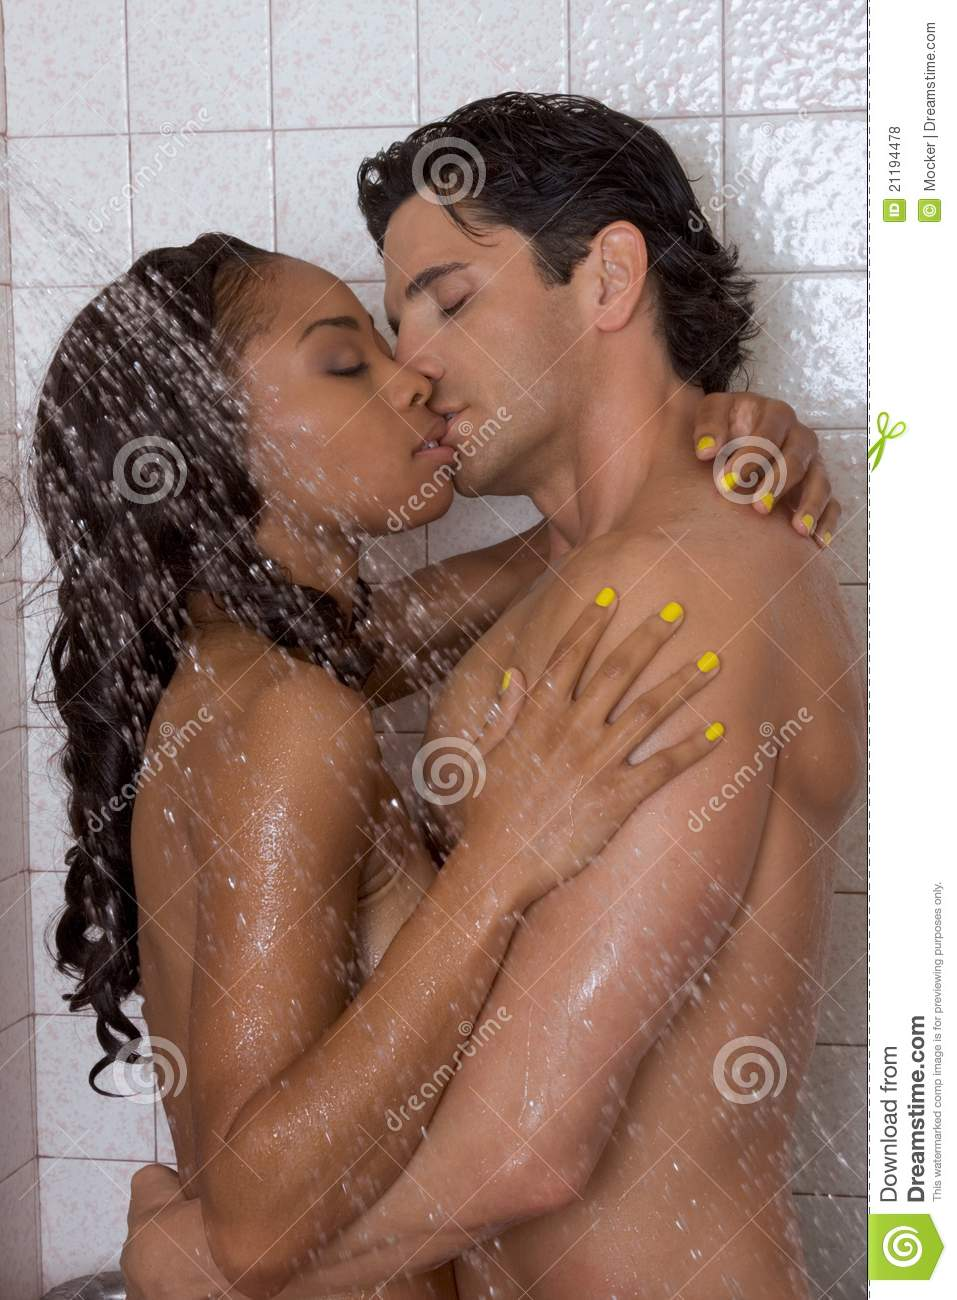 nude black men and girl